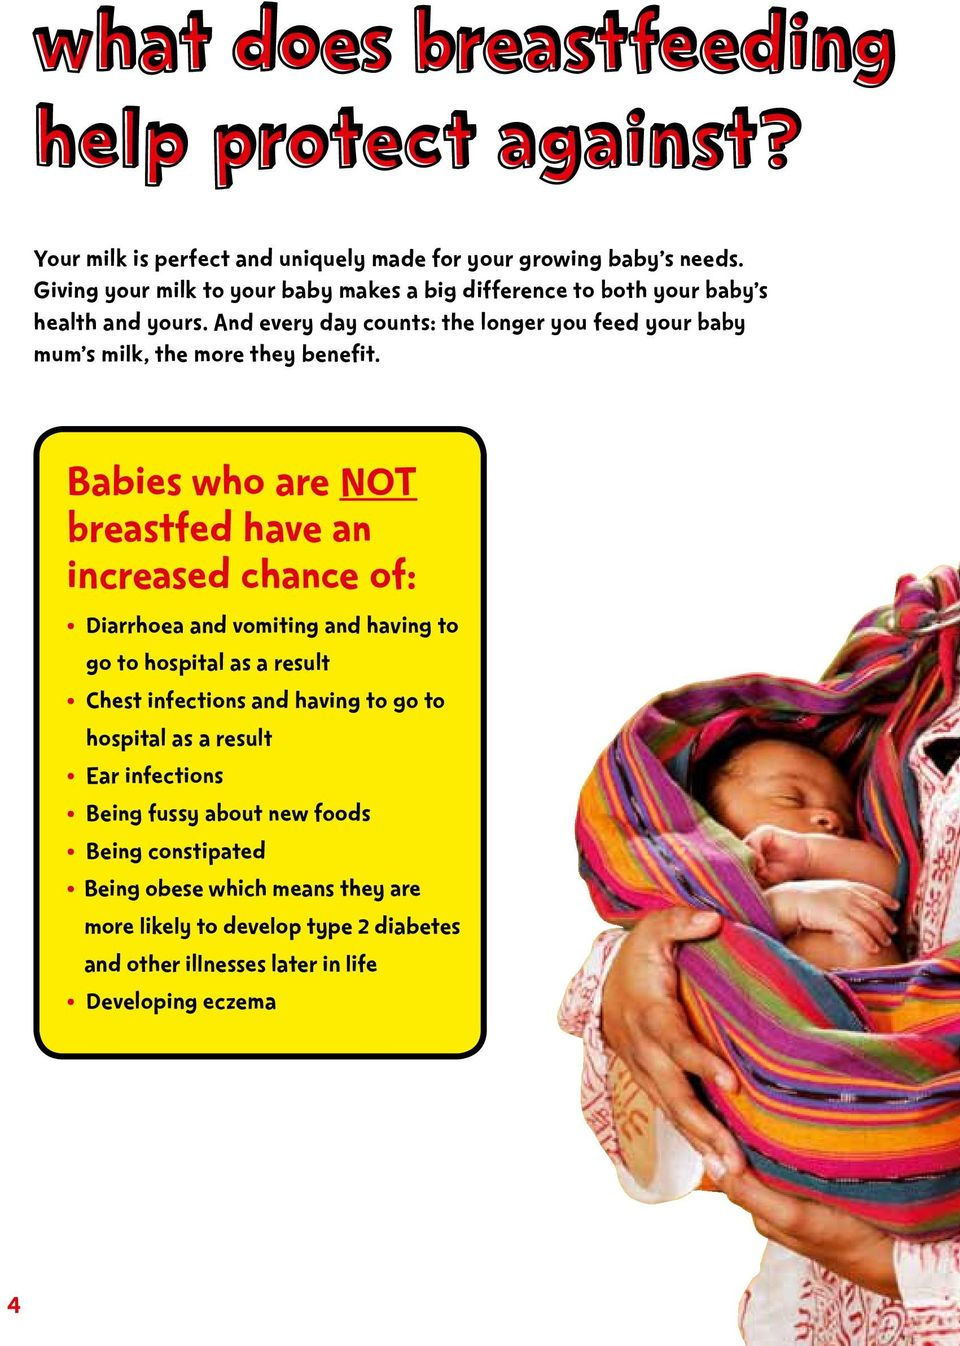 And every day counts: the longer you feed your baby mum s milk, the more they benefit.